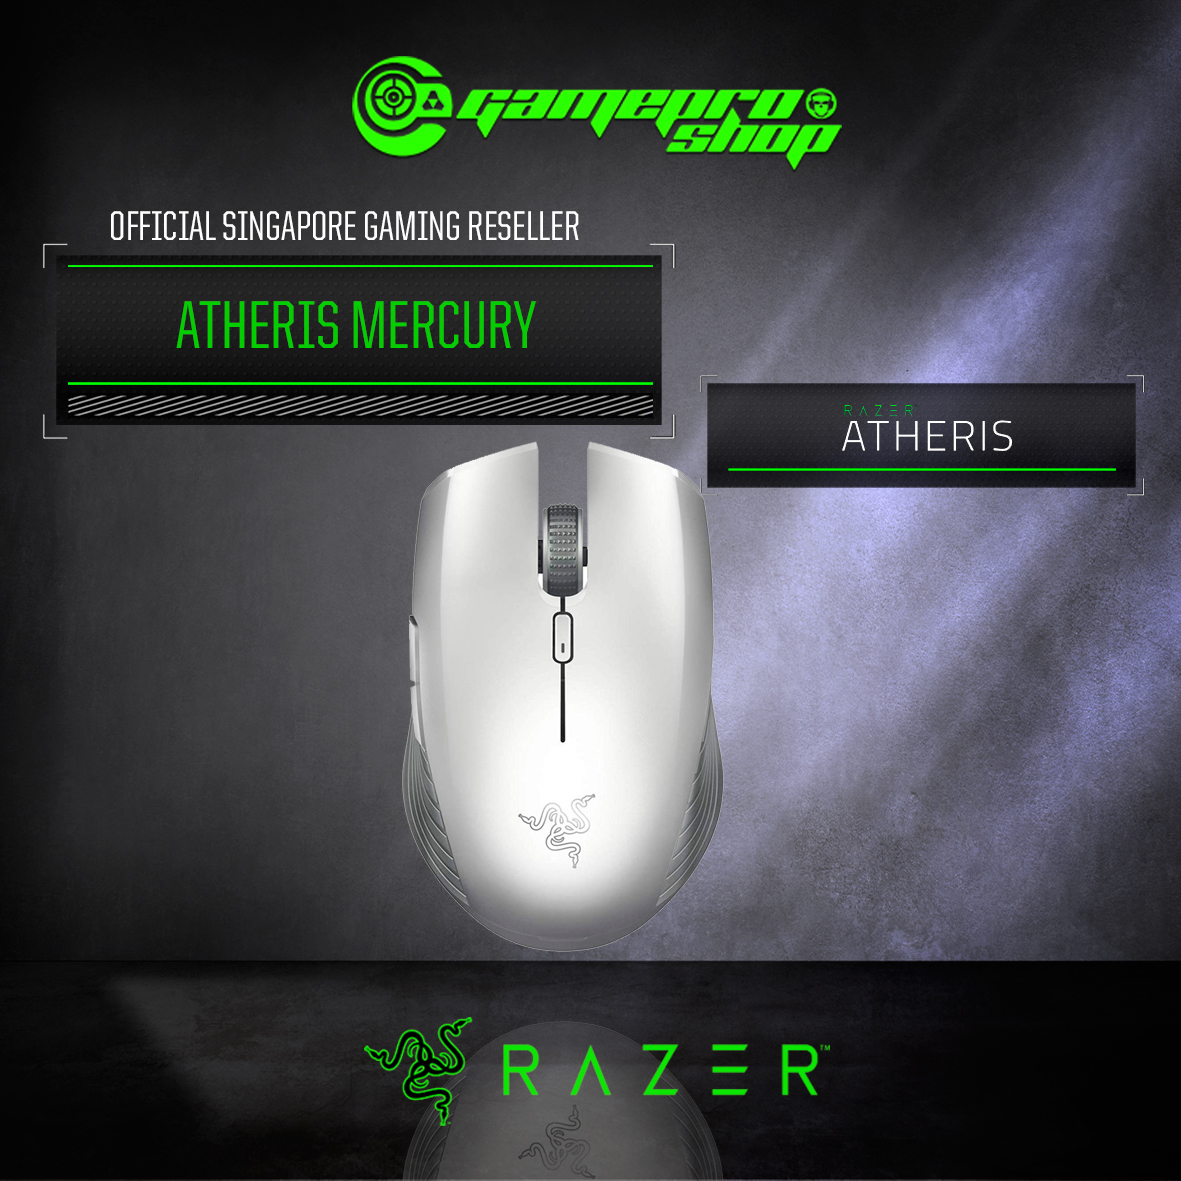 Razer Atheris - Mobile Mouse - Mercury (RZ01-02170300-R3A1)